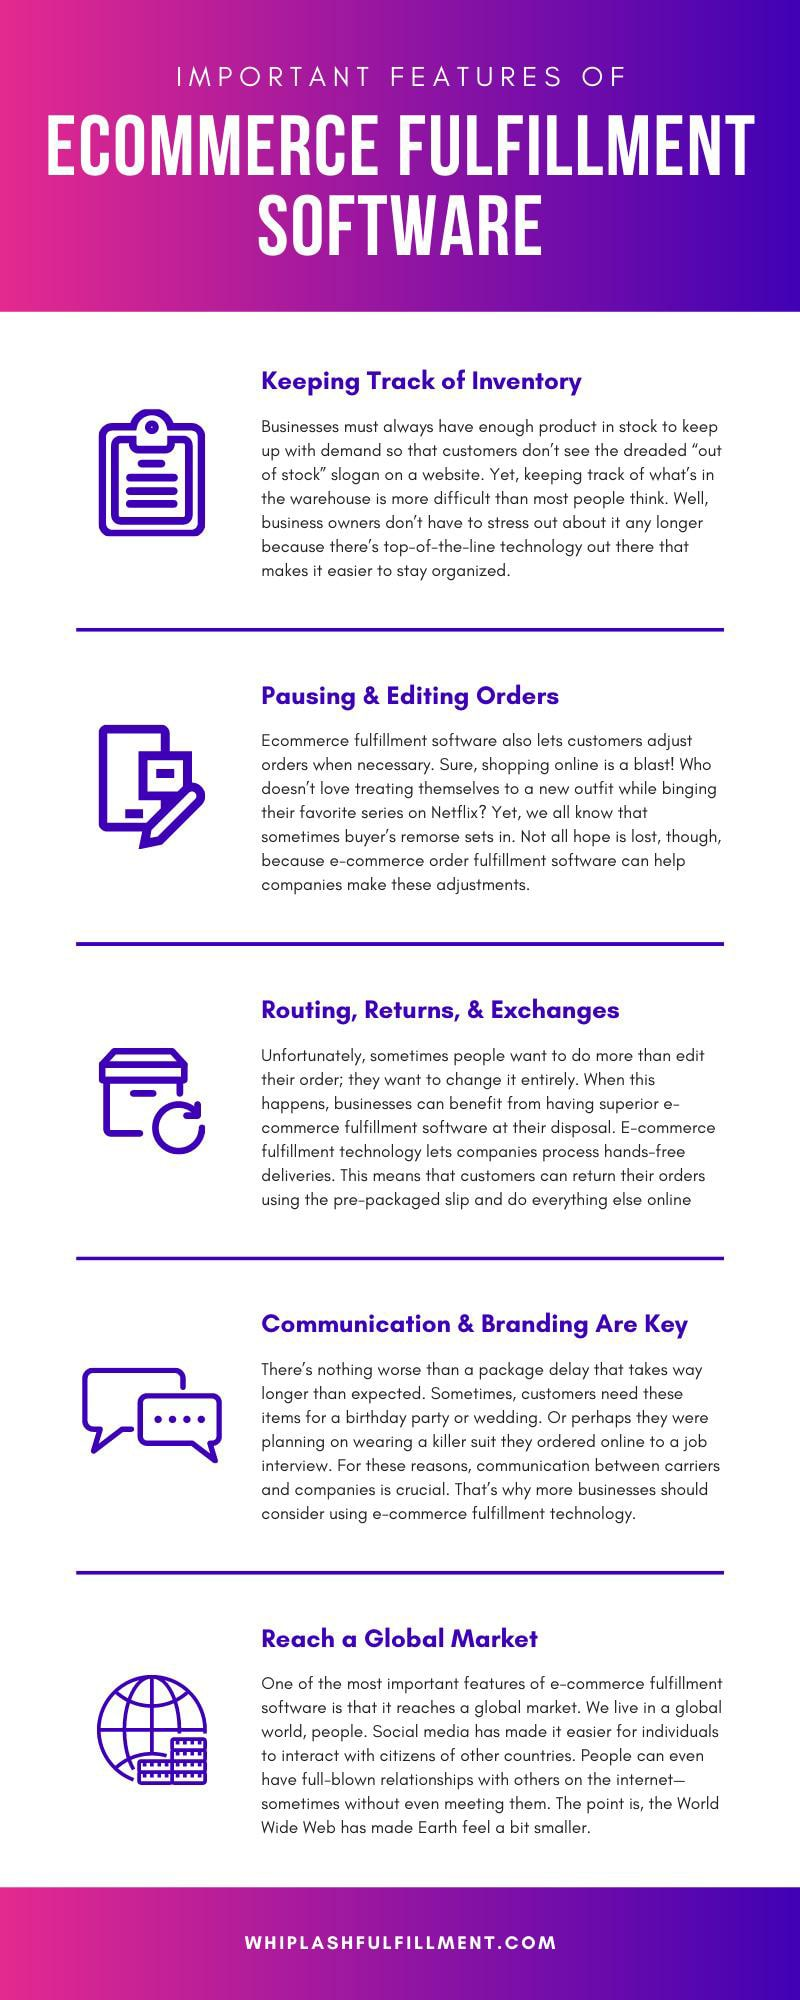 Ecommerce fulfillment software infographic discussing keeping track of inventory, pausing and editing orders, routing returns and exchanges, communication and branding are key, and reach a global market.